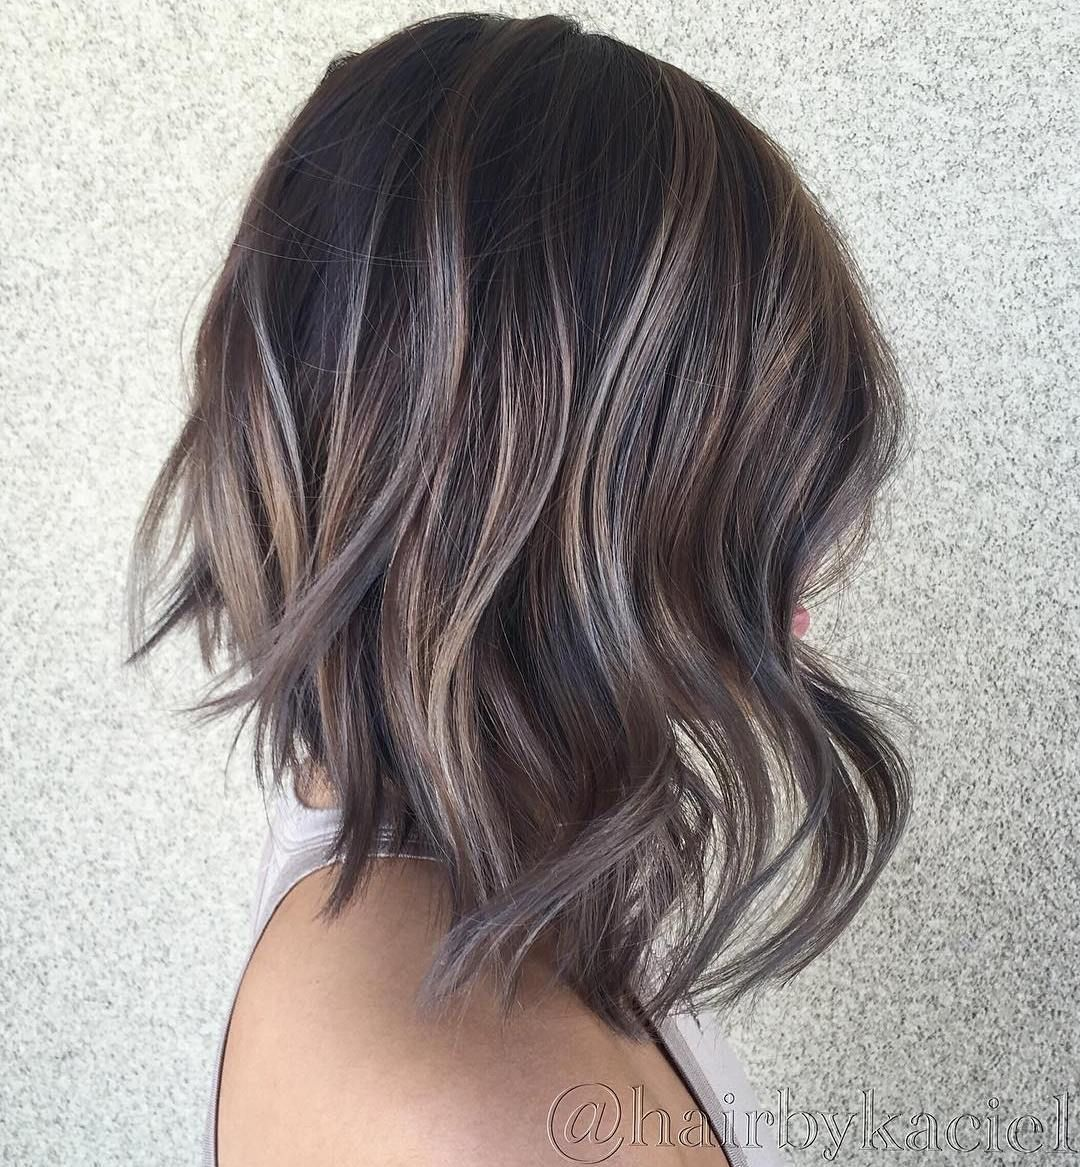 Best marvelous balayage hair color ideas with blonde brown and